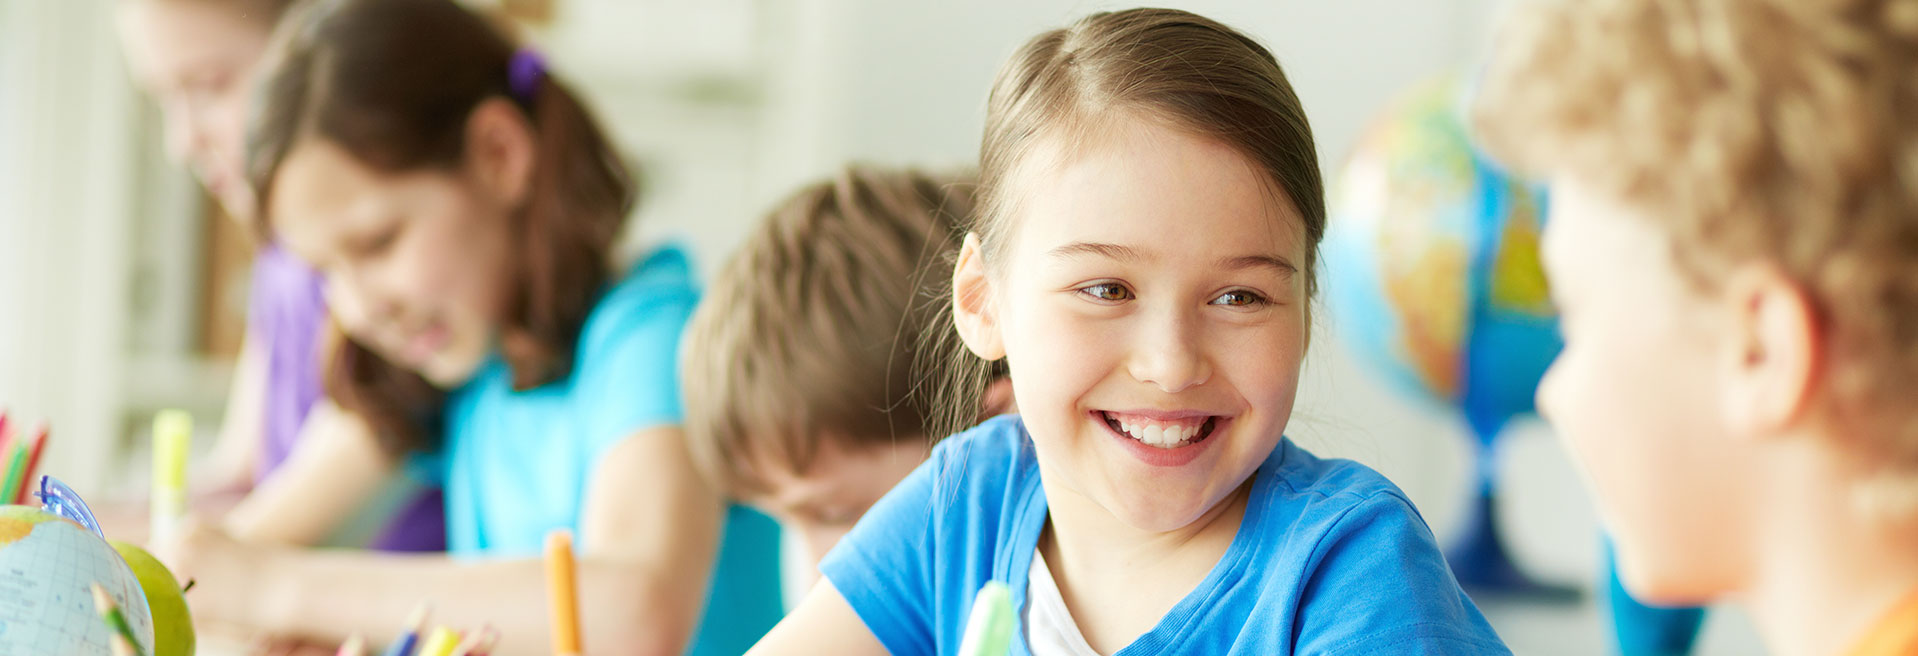 Girl smiling at classmate